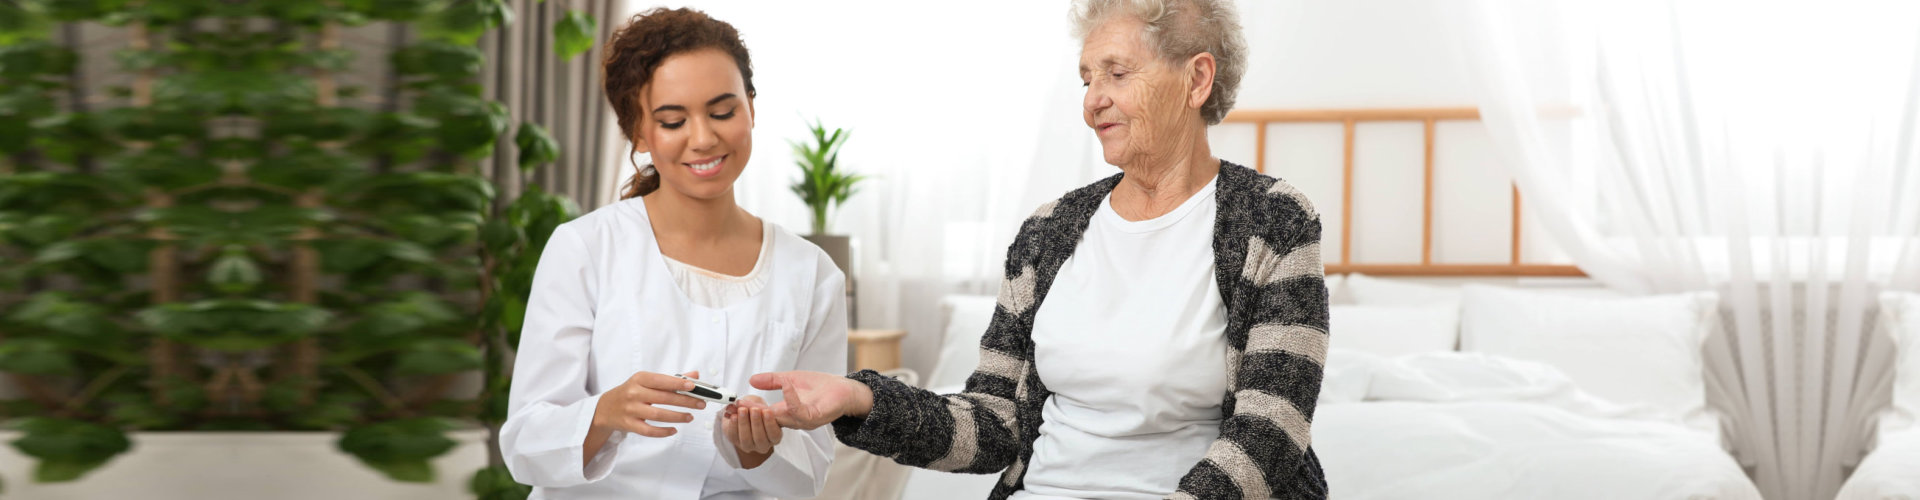 caregiver getting senior woman's blood count